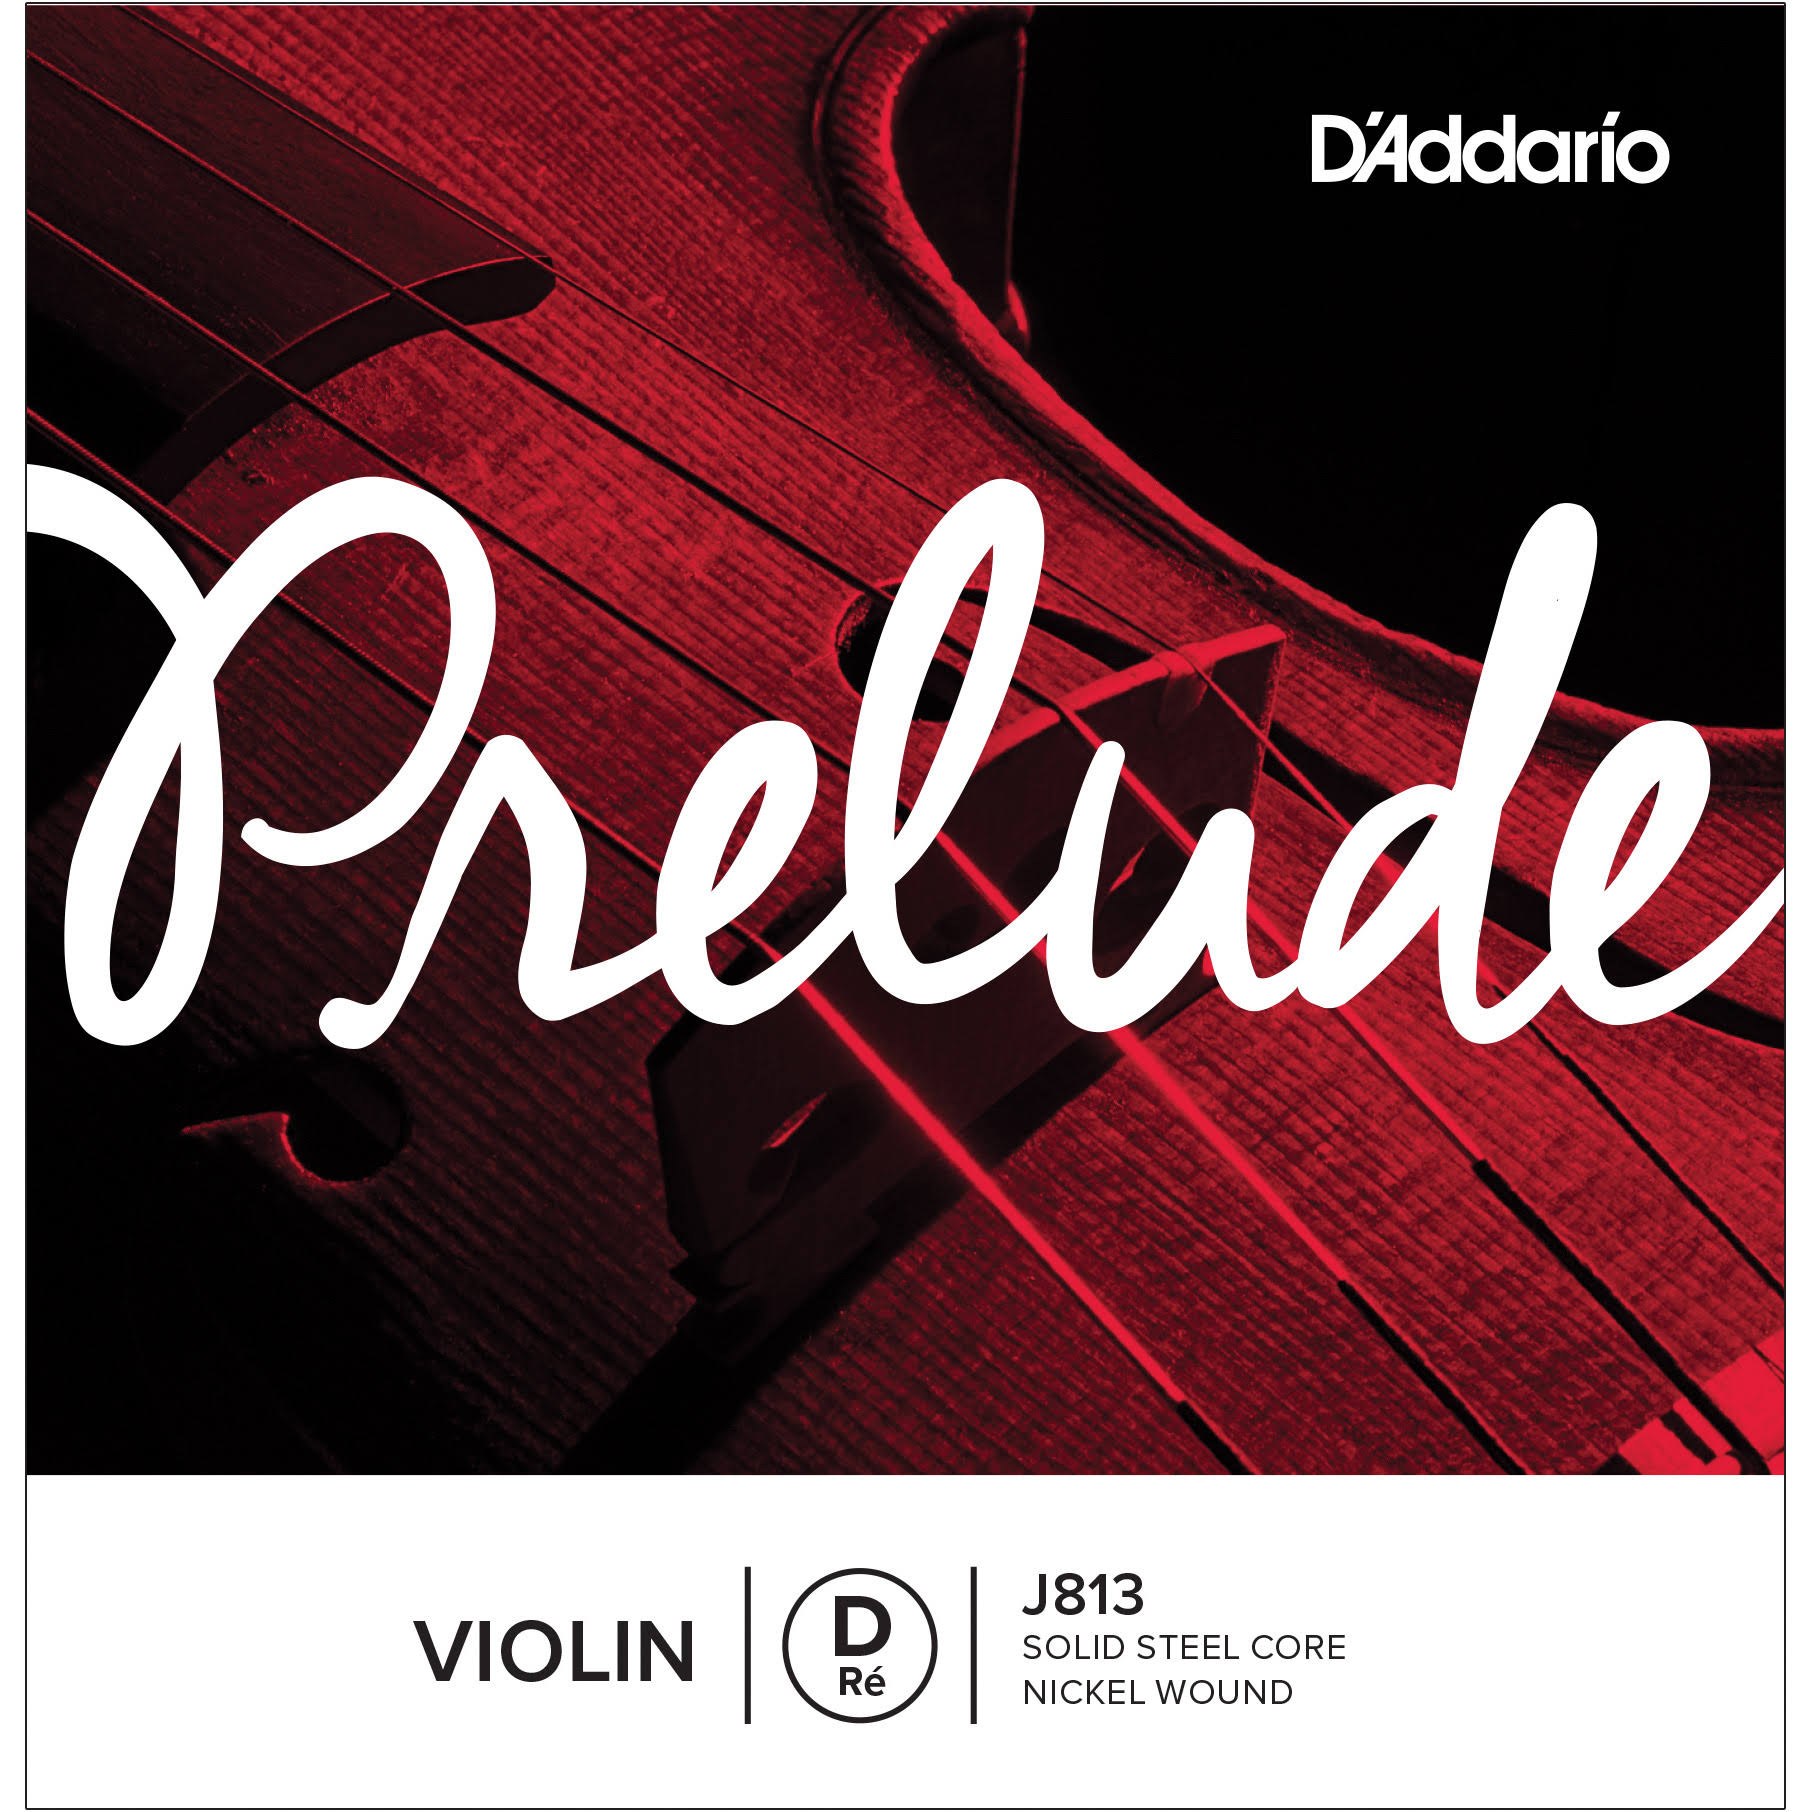 D'Addario Prelude Violin Single D String - Medium Tension